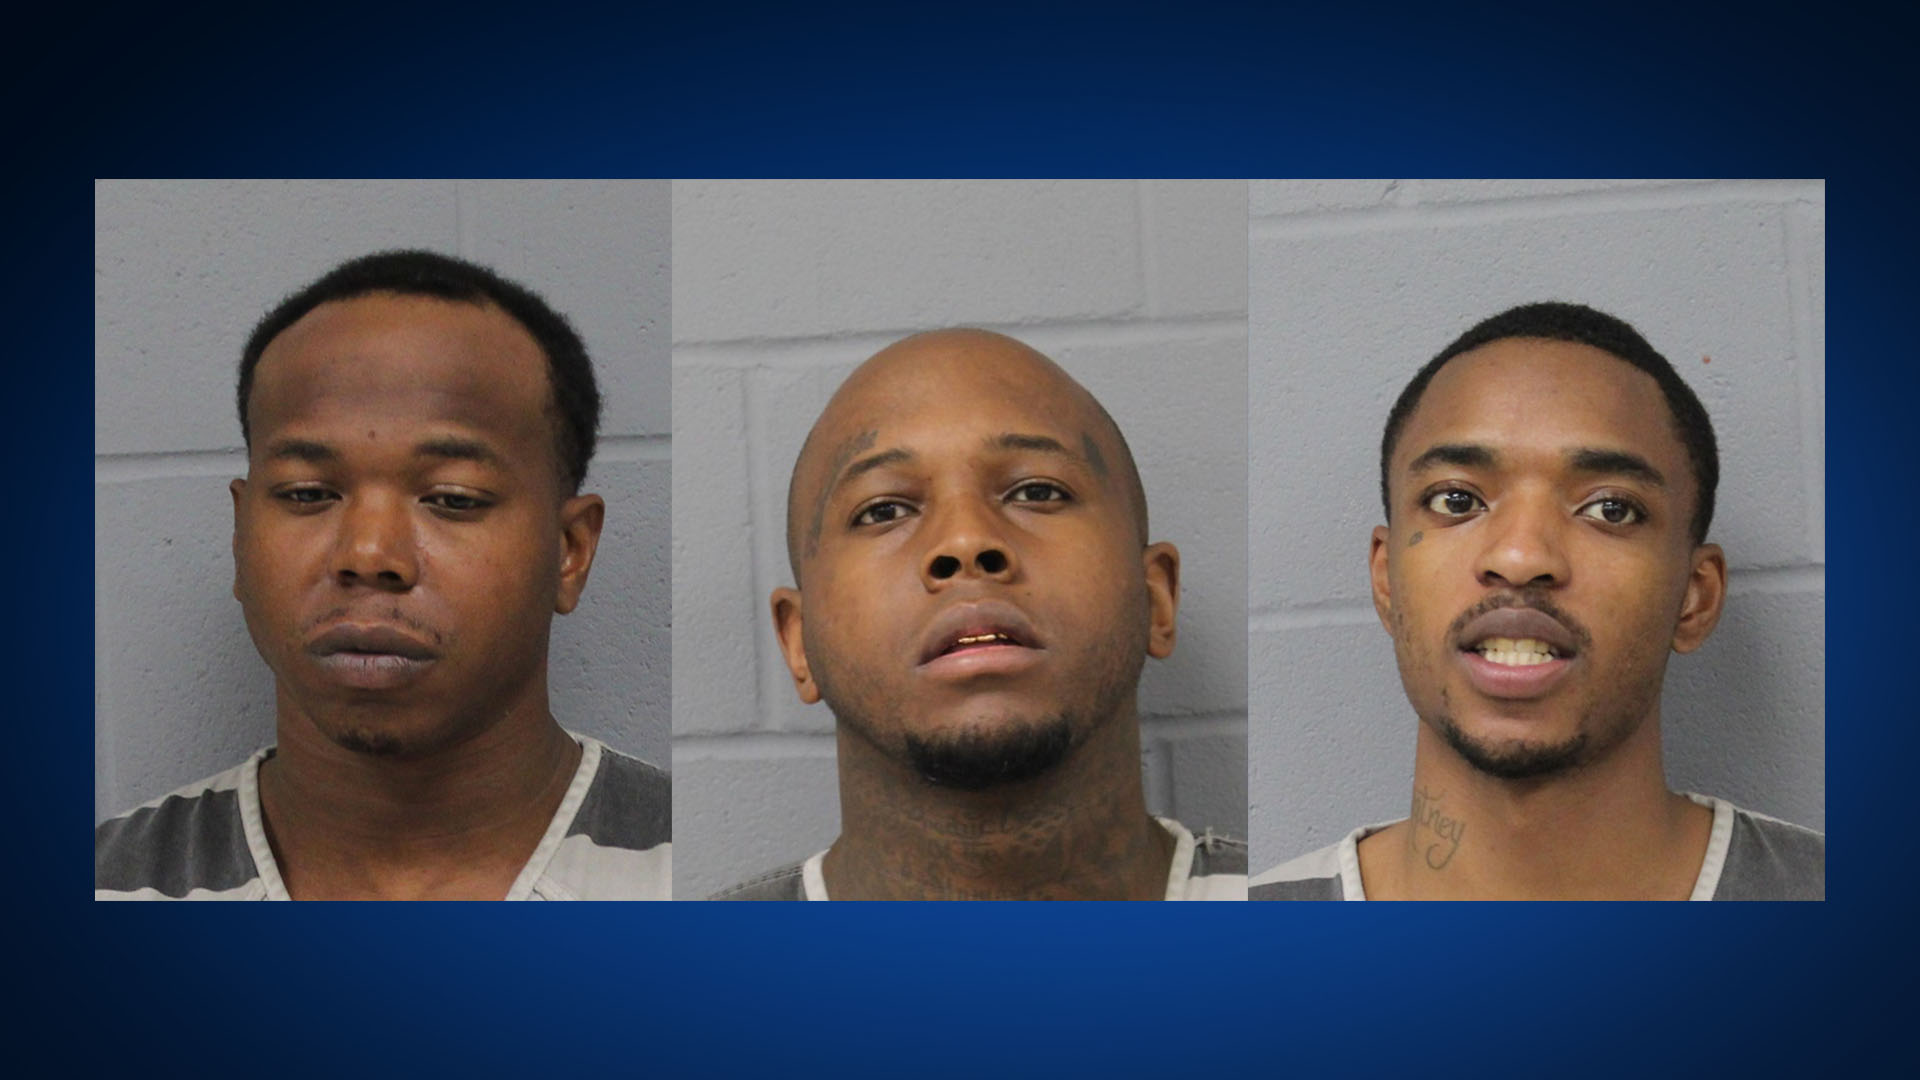 FROM LEFT TO RIGHT: Bobby McVade, 33, Laderious Nicholson, 28, Cory Burdett, 23 (Travis County Jail Photos)